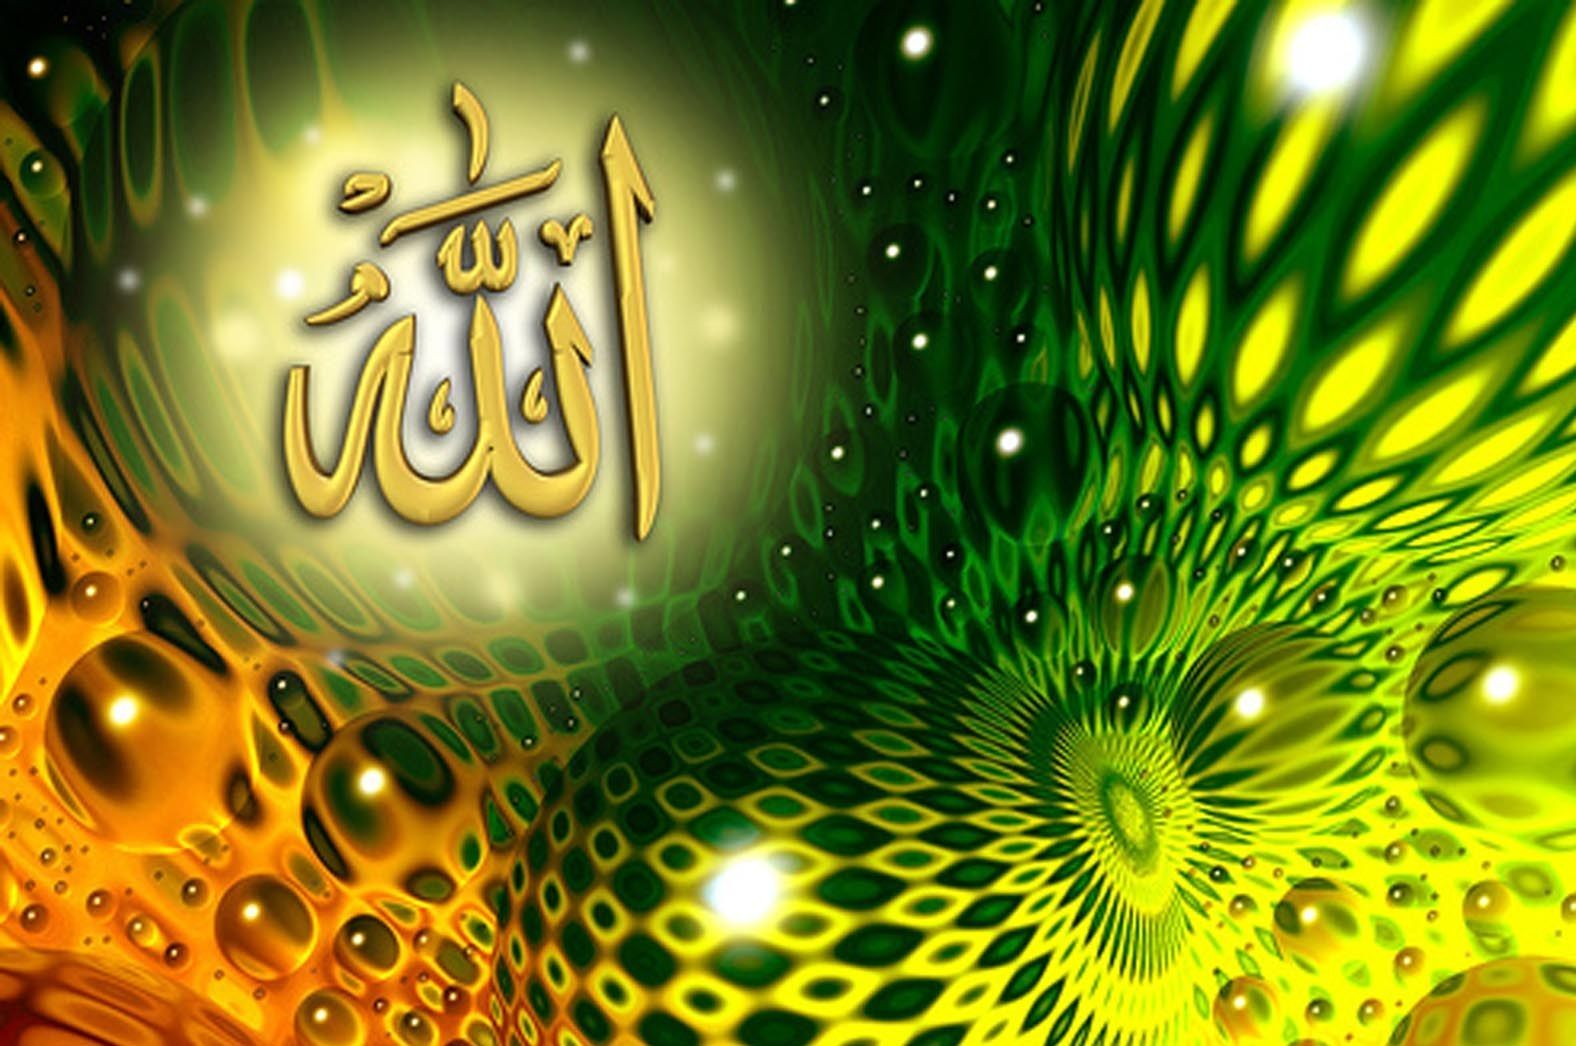 Allah wallpapers hd 2015 wallpaper cave.